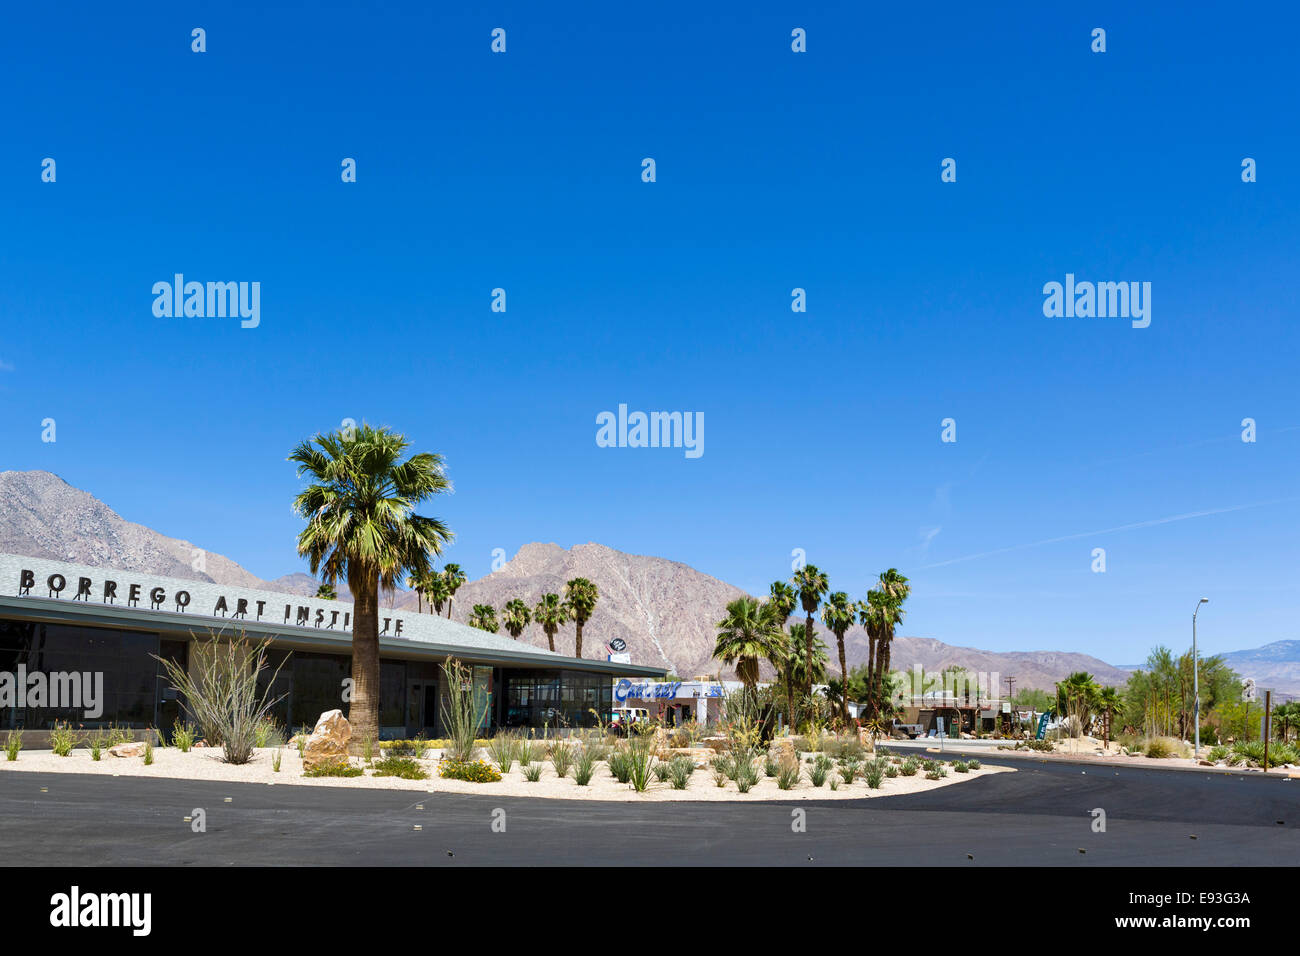 The Borrego Art Institute in downtown Borrego Springs, Anza-Borrego Desert State Park, Southern California, USA - Stock Image